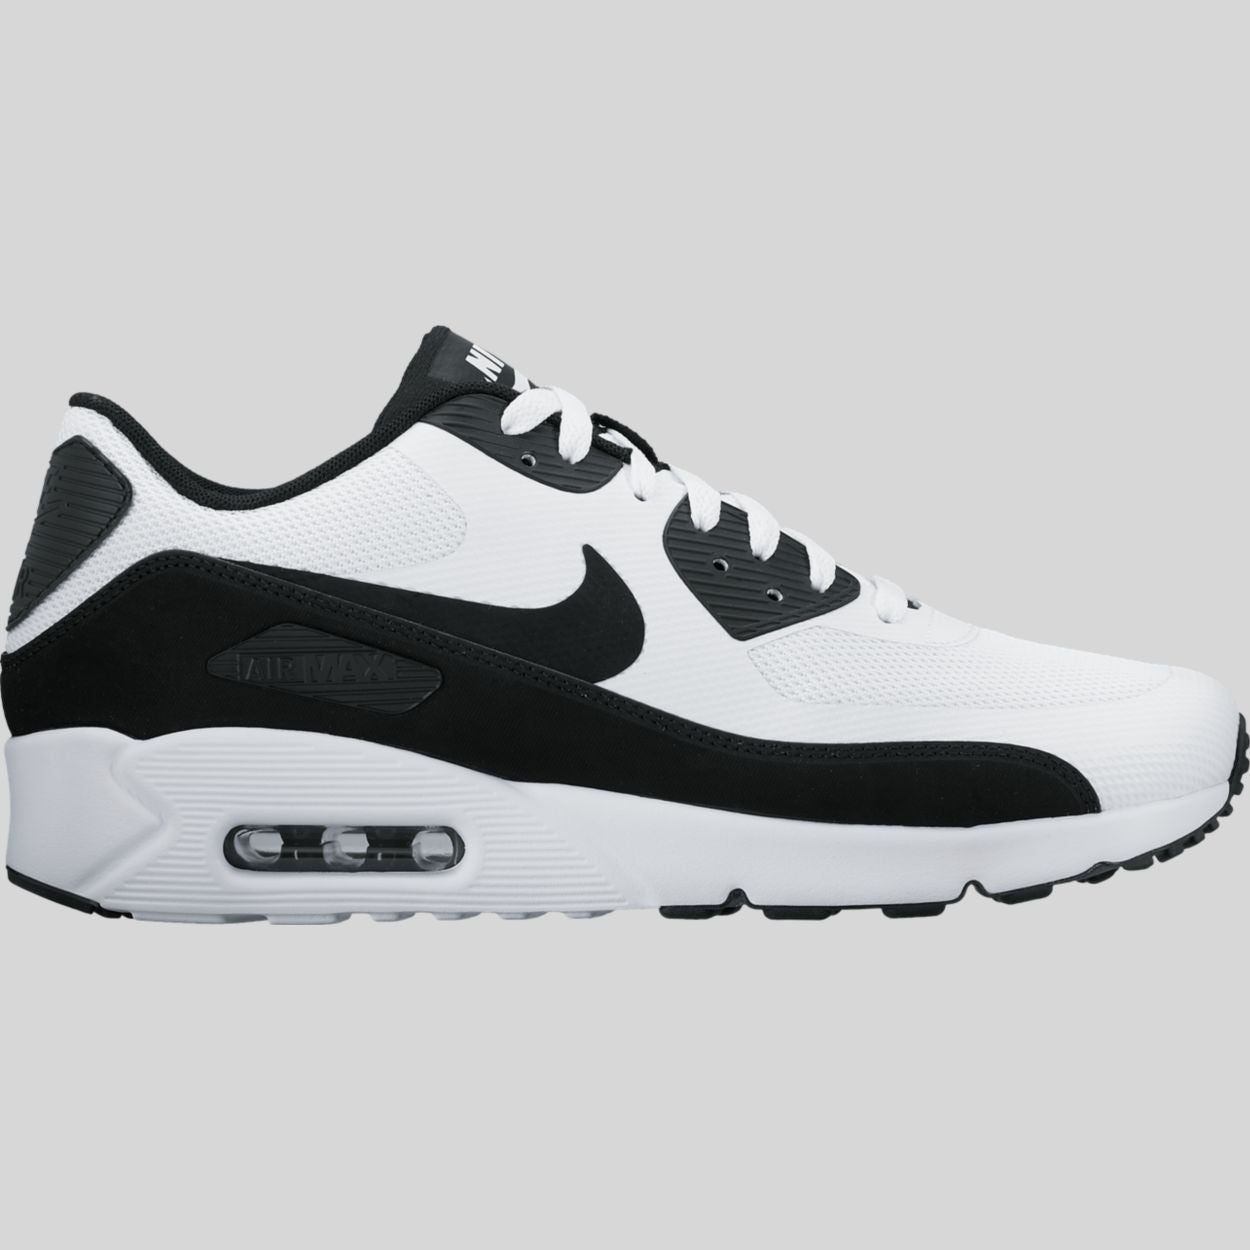 size 40 e90eb c0541 Nike Air Max 90 Ultra 2.0 Essential White Black